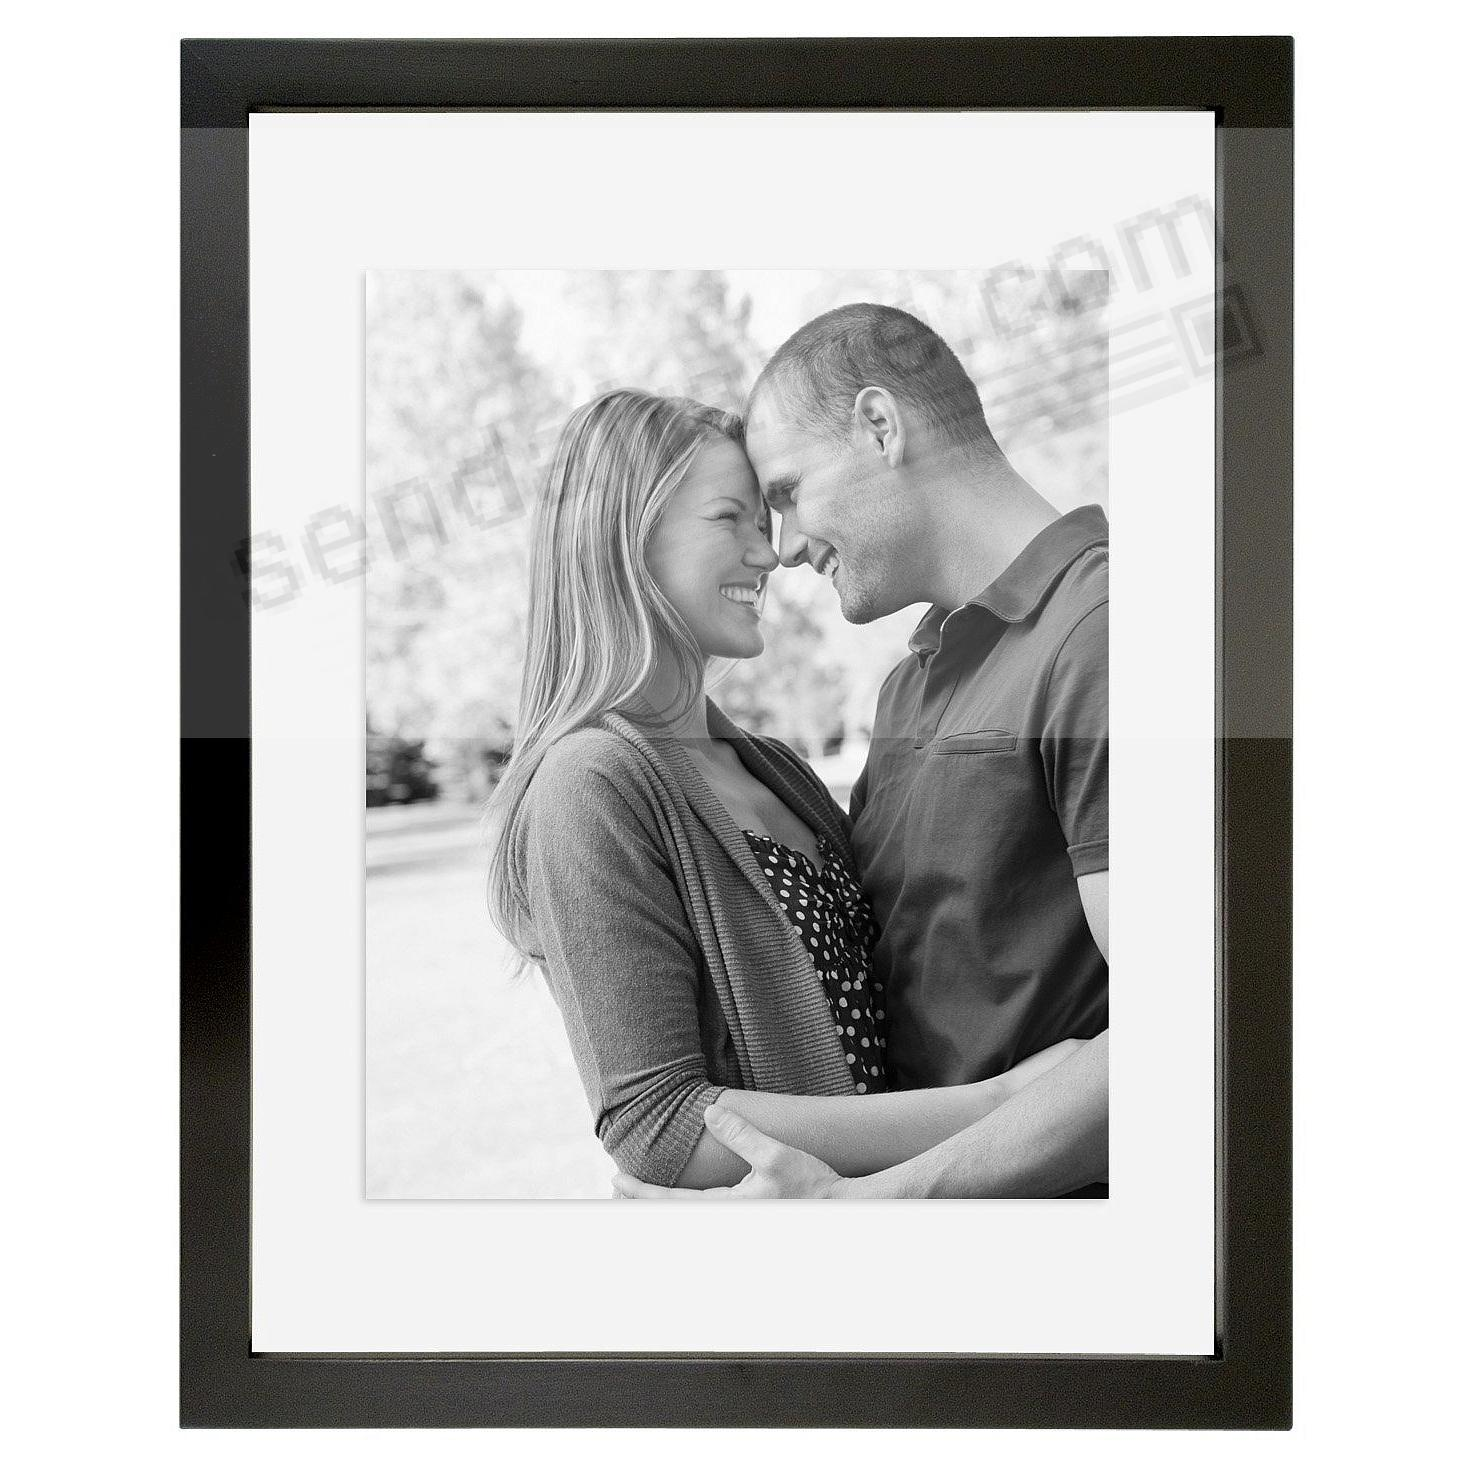 the original float uandu doublesided 16x20 black stain wood wall frame